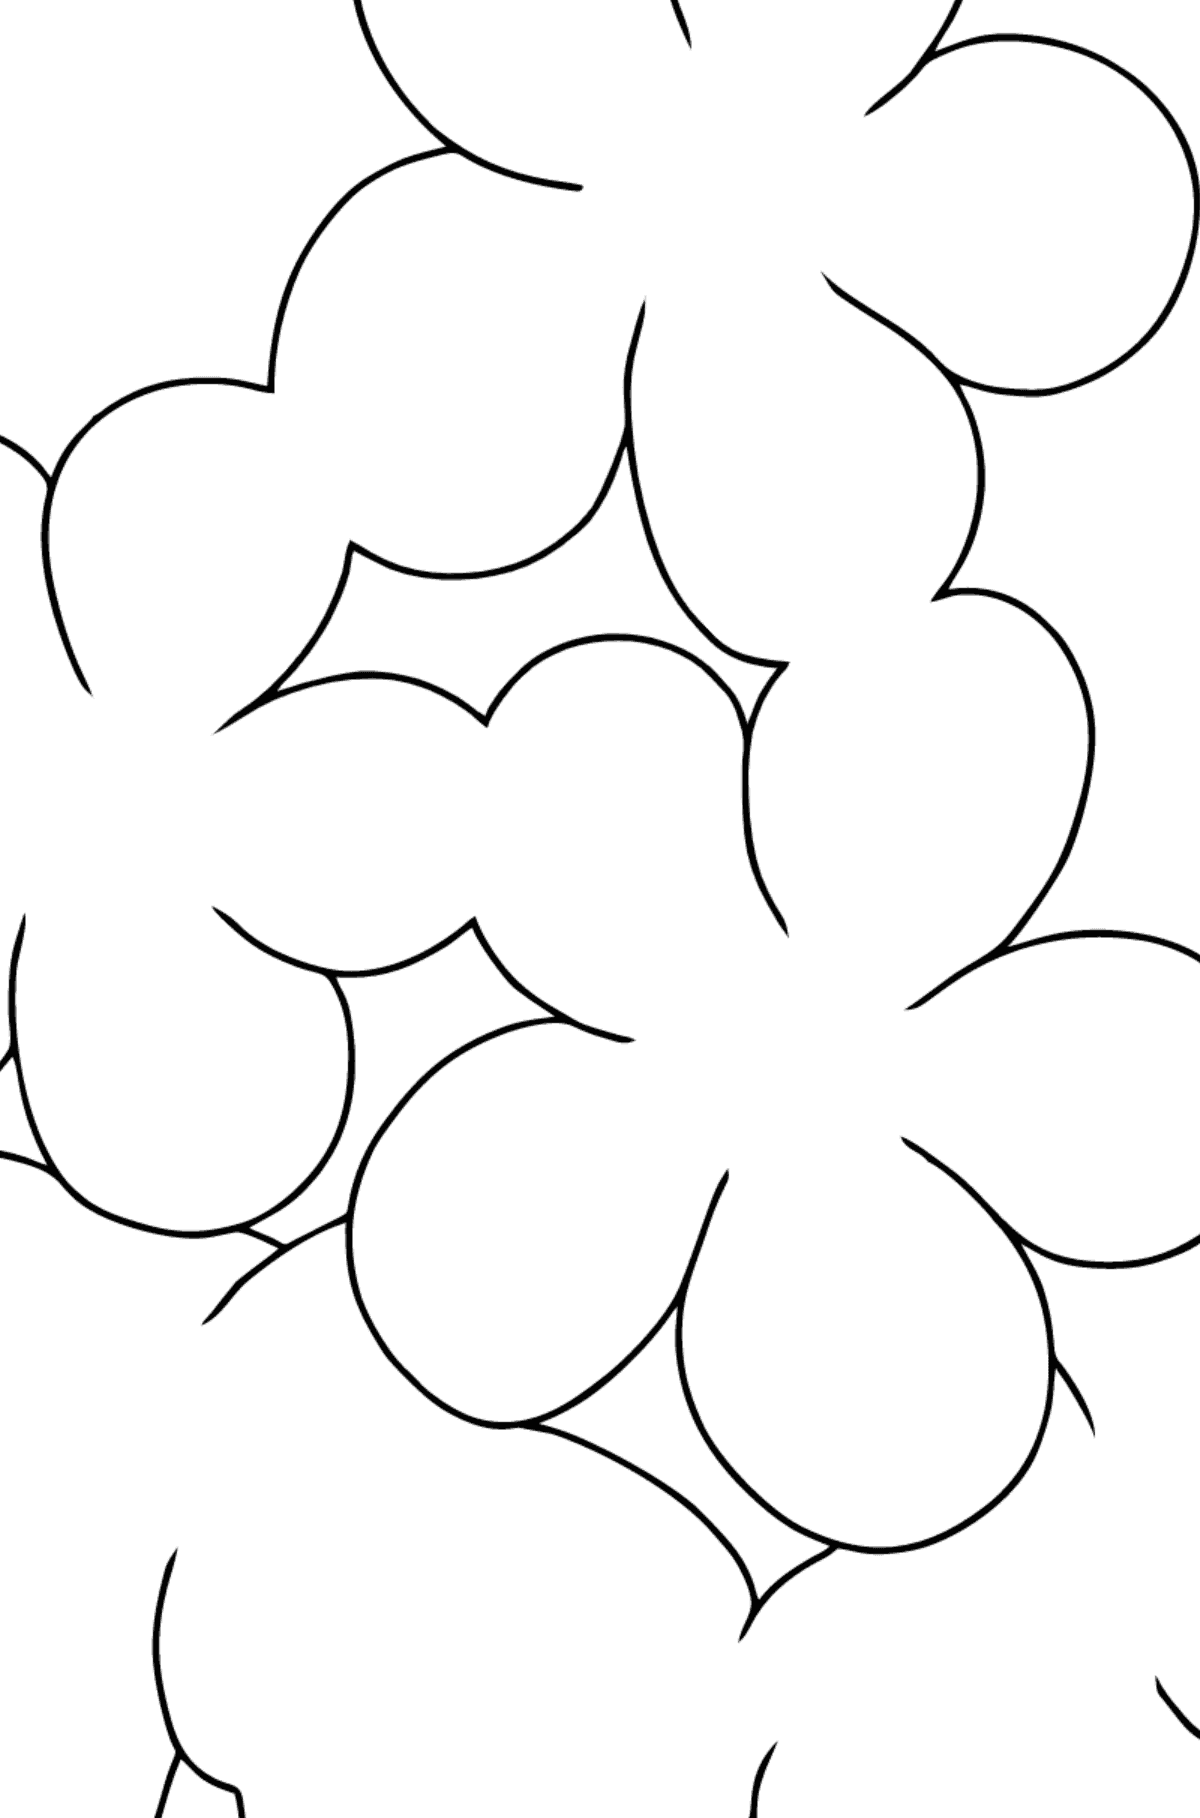 Coloring Page - Spring and First Flowers - Math Coloring - Addition for Kids